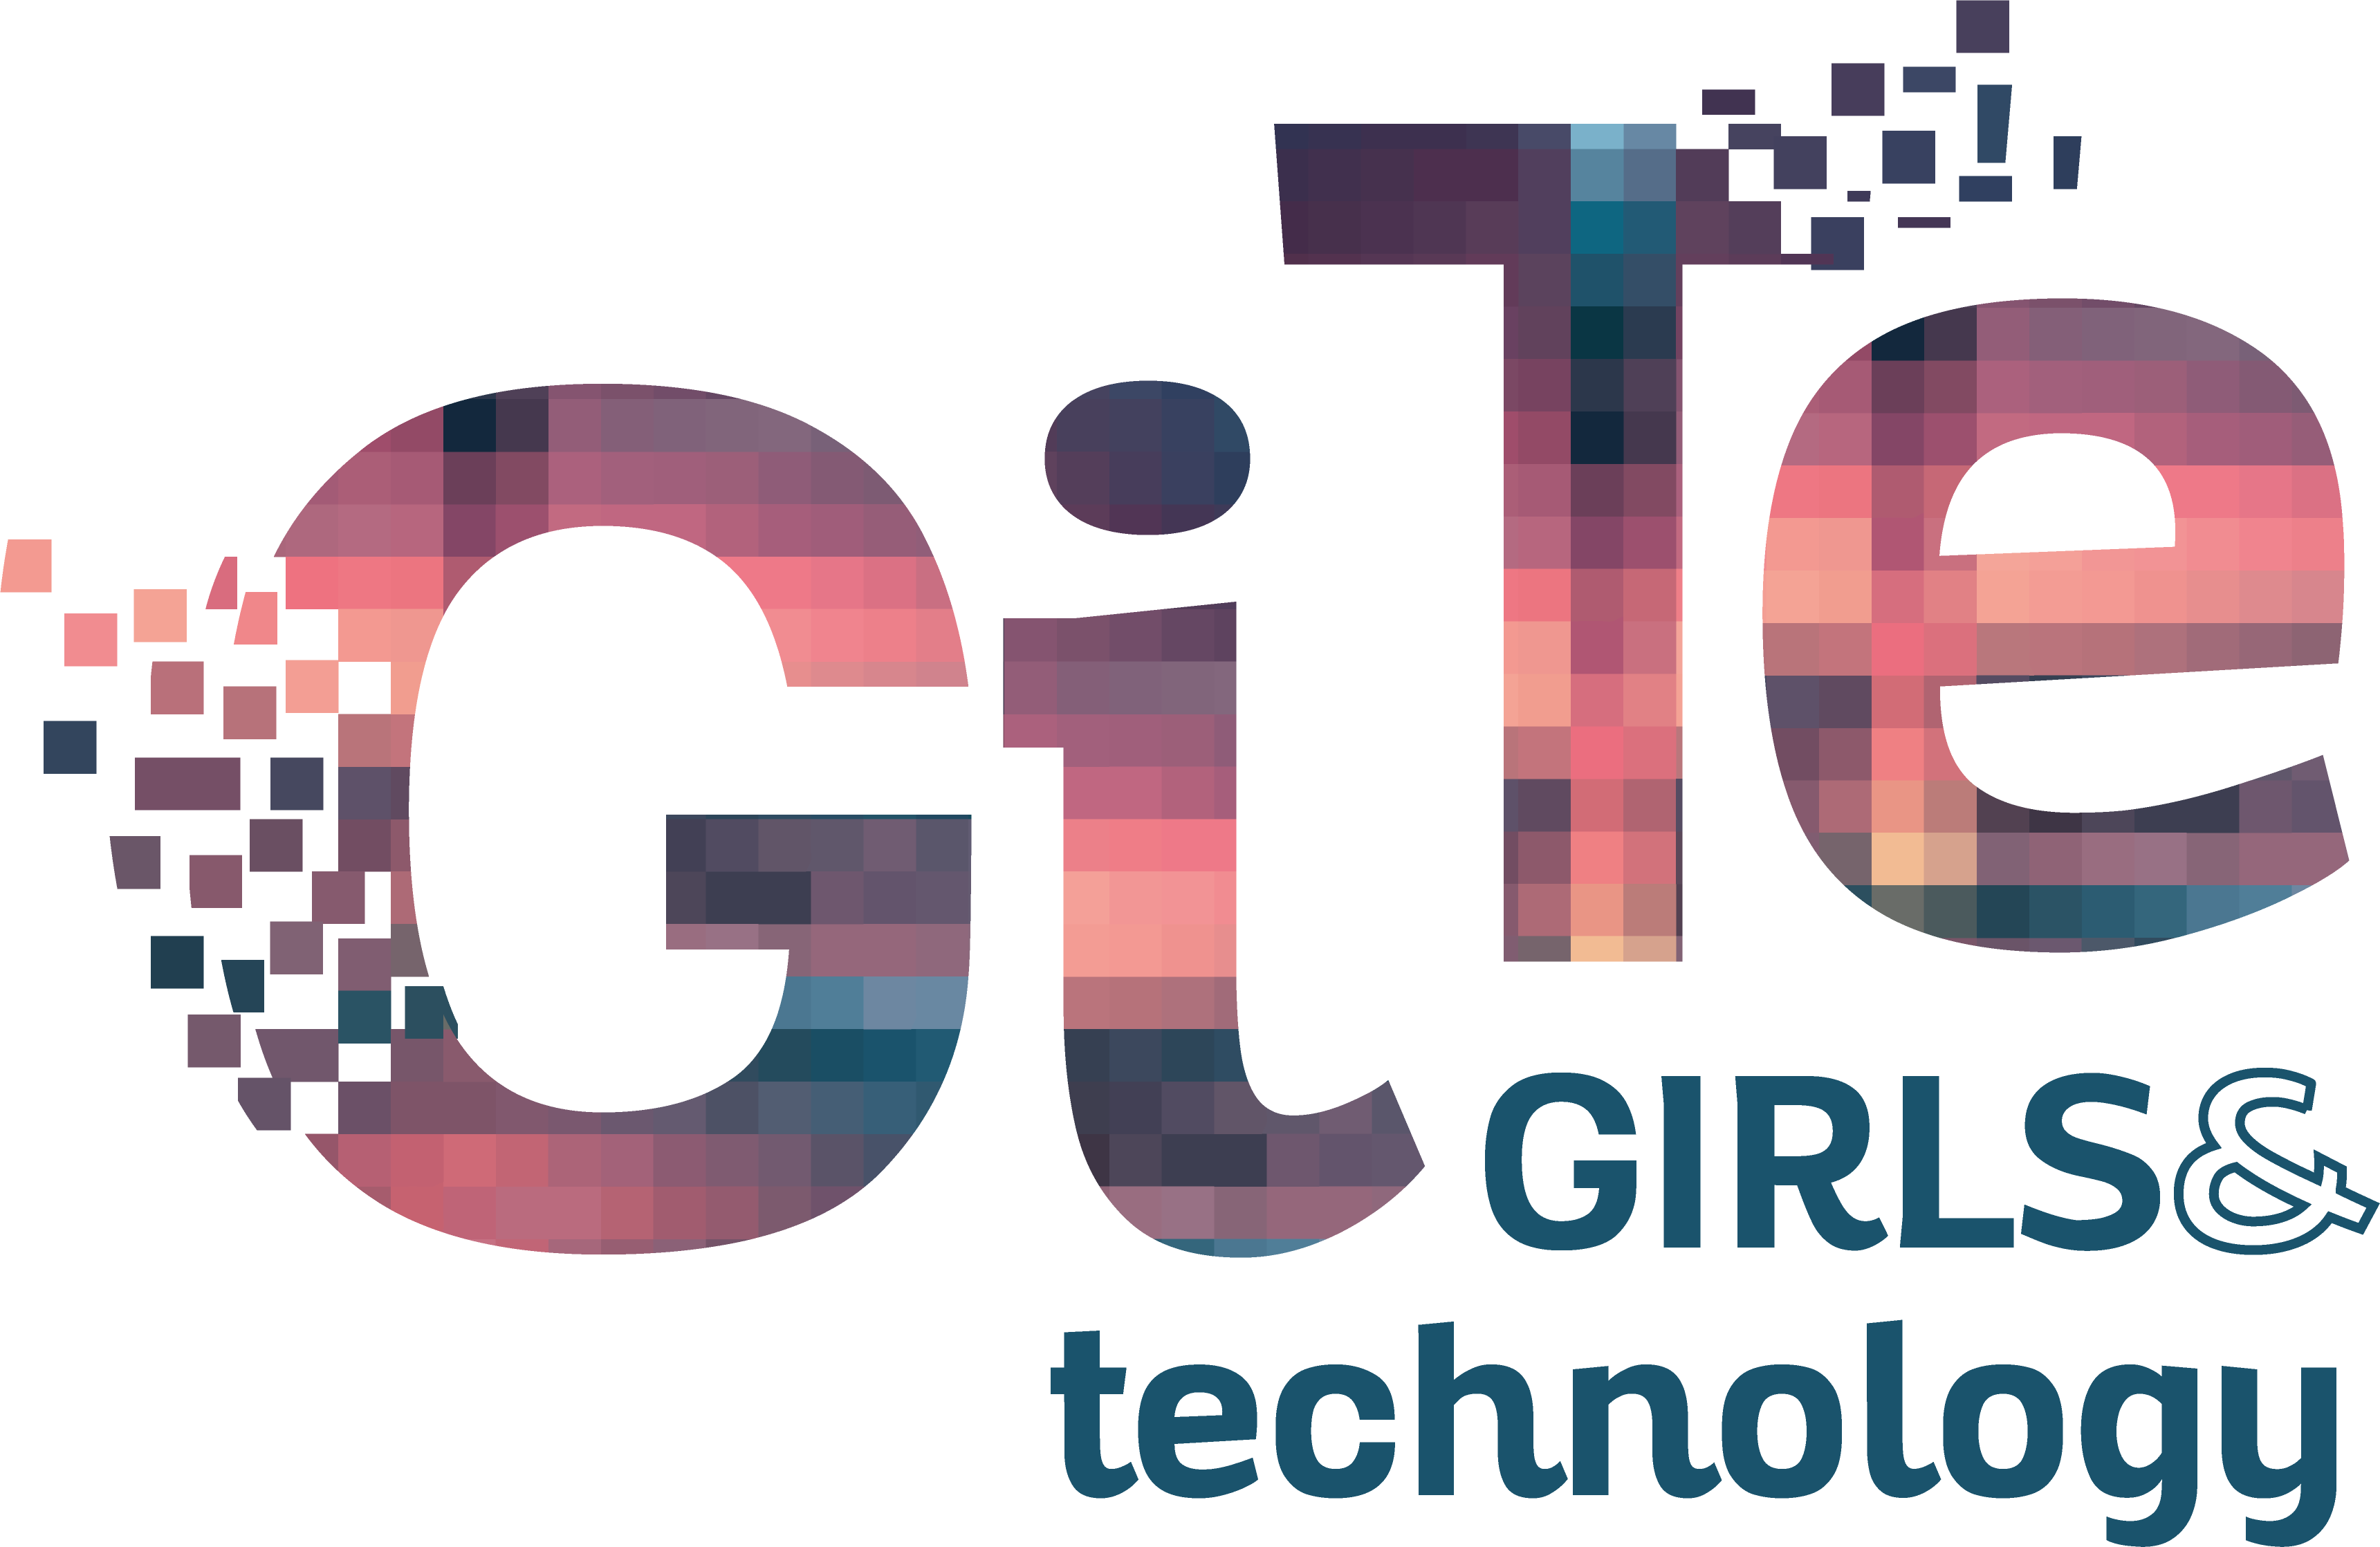 ESF — Girls en technologie